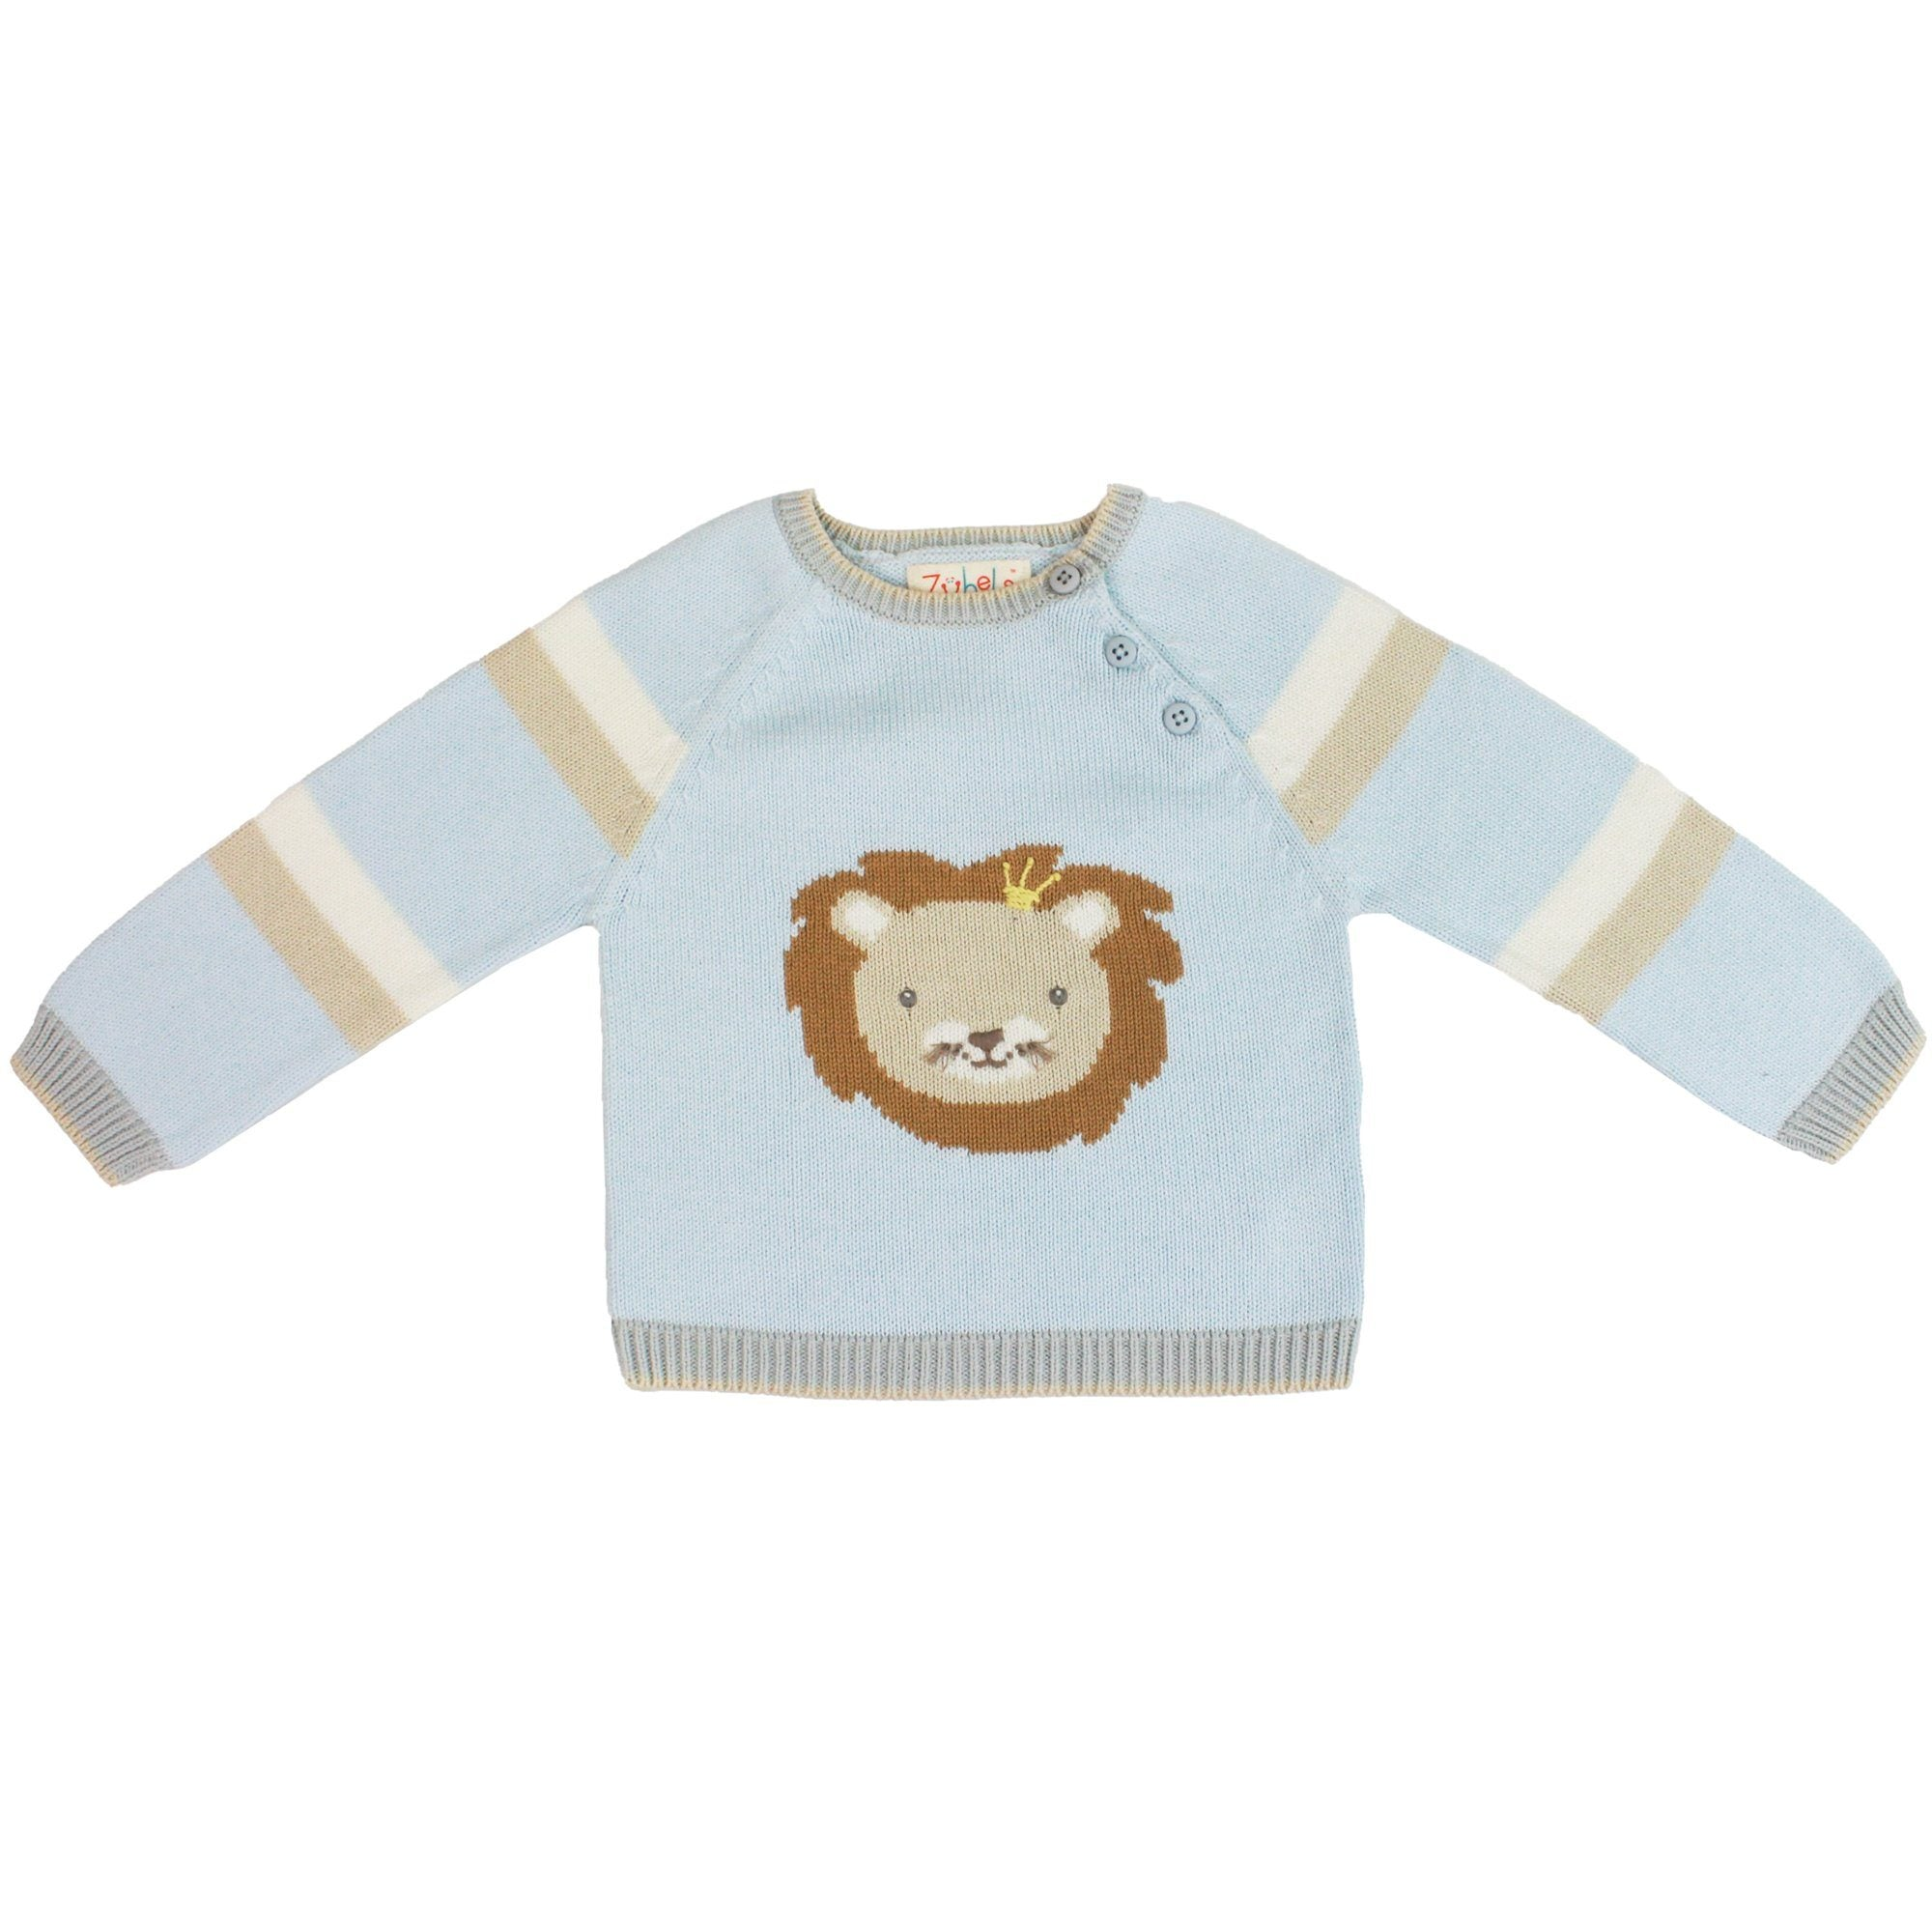 Lion Knit Sweater